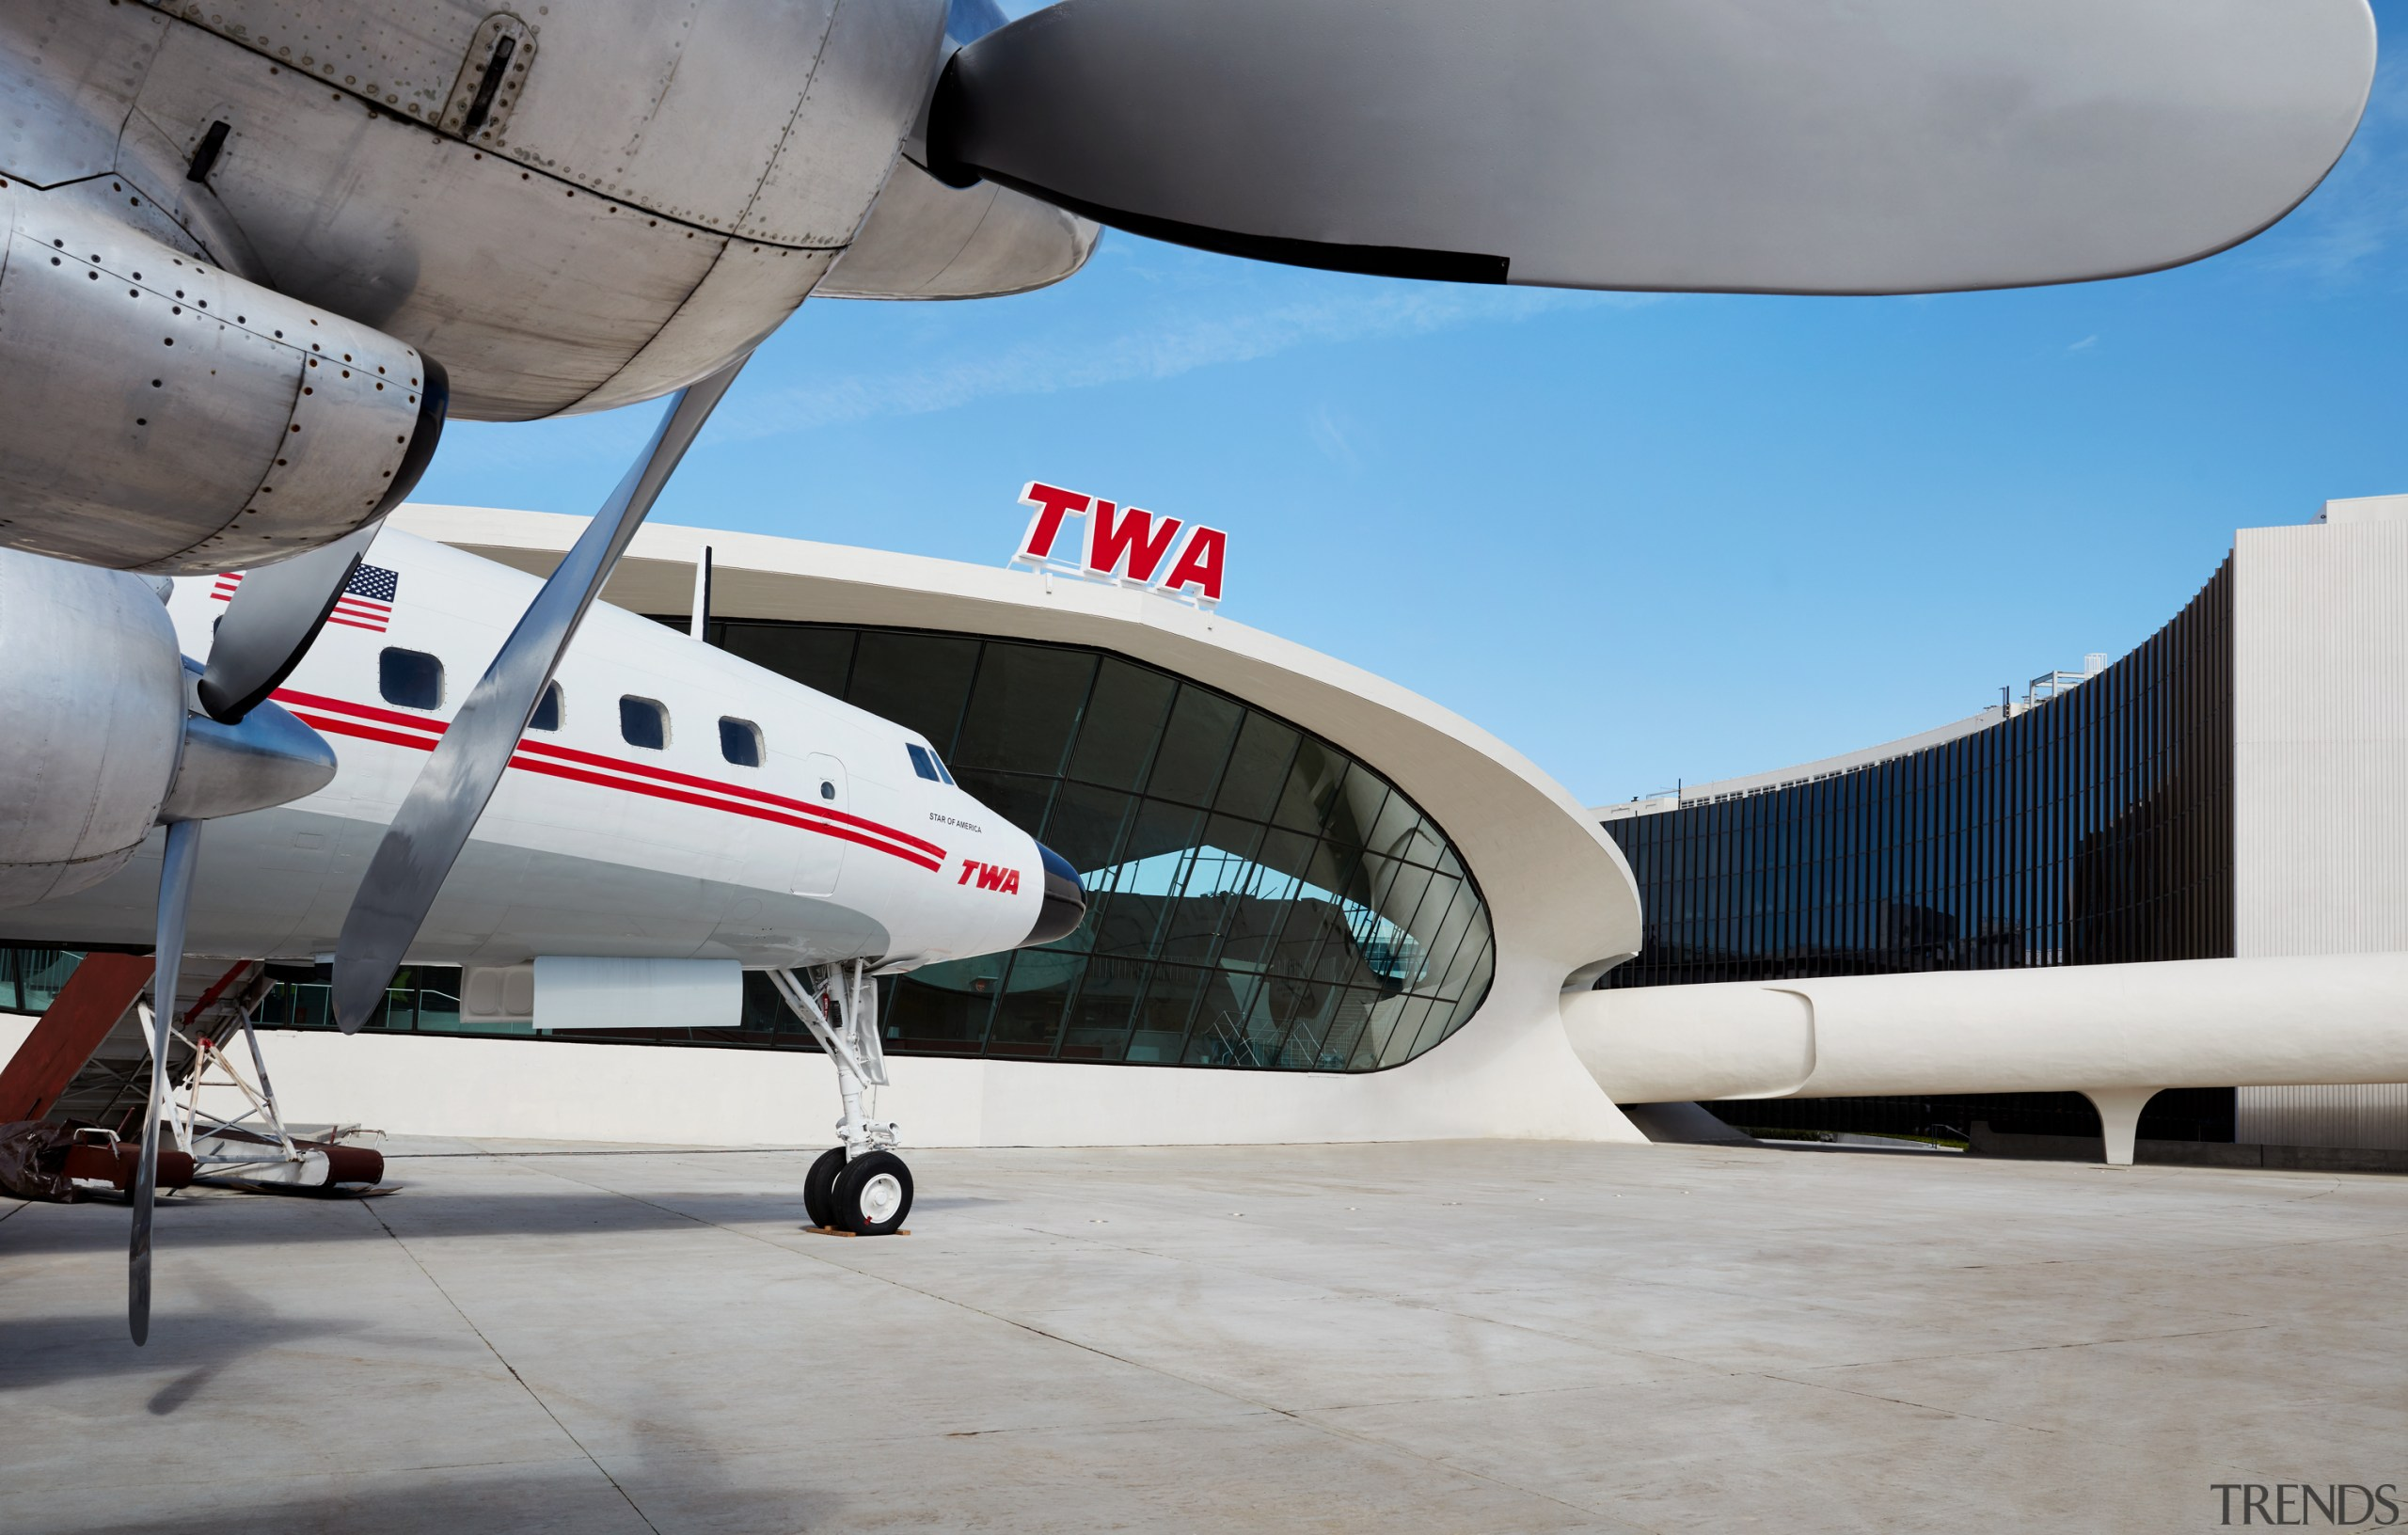 A refitted, and permanently grounded, Lockheed Constellation serves aerospace engineering, aircraft, airliner, airplane, Lockheed Constellation, retro cocktail bar, TWA Hotel